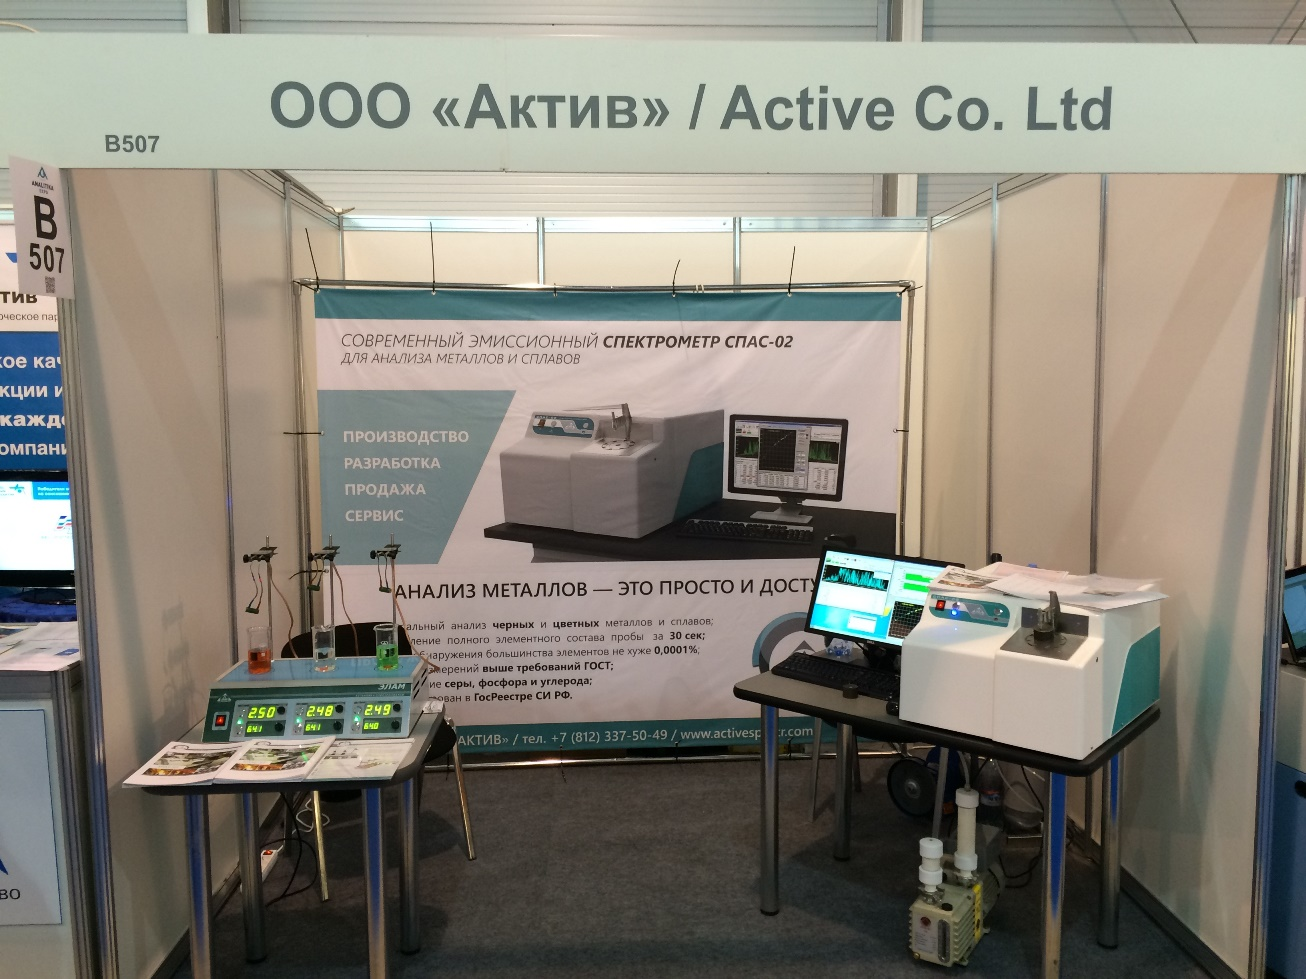 Active Co. at the International Exhibition